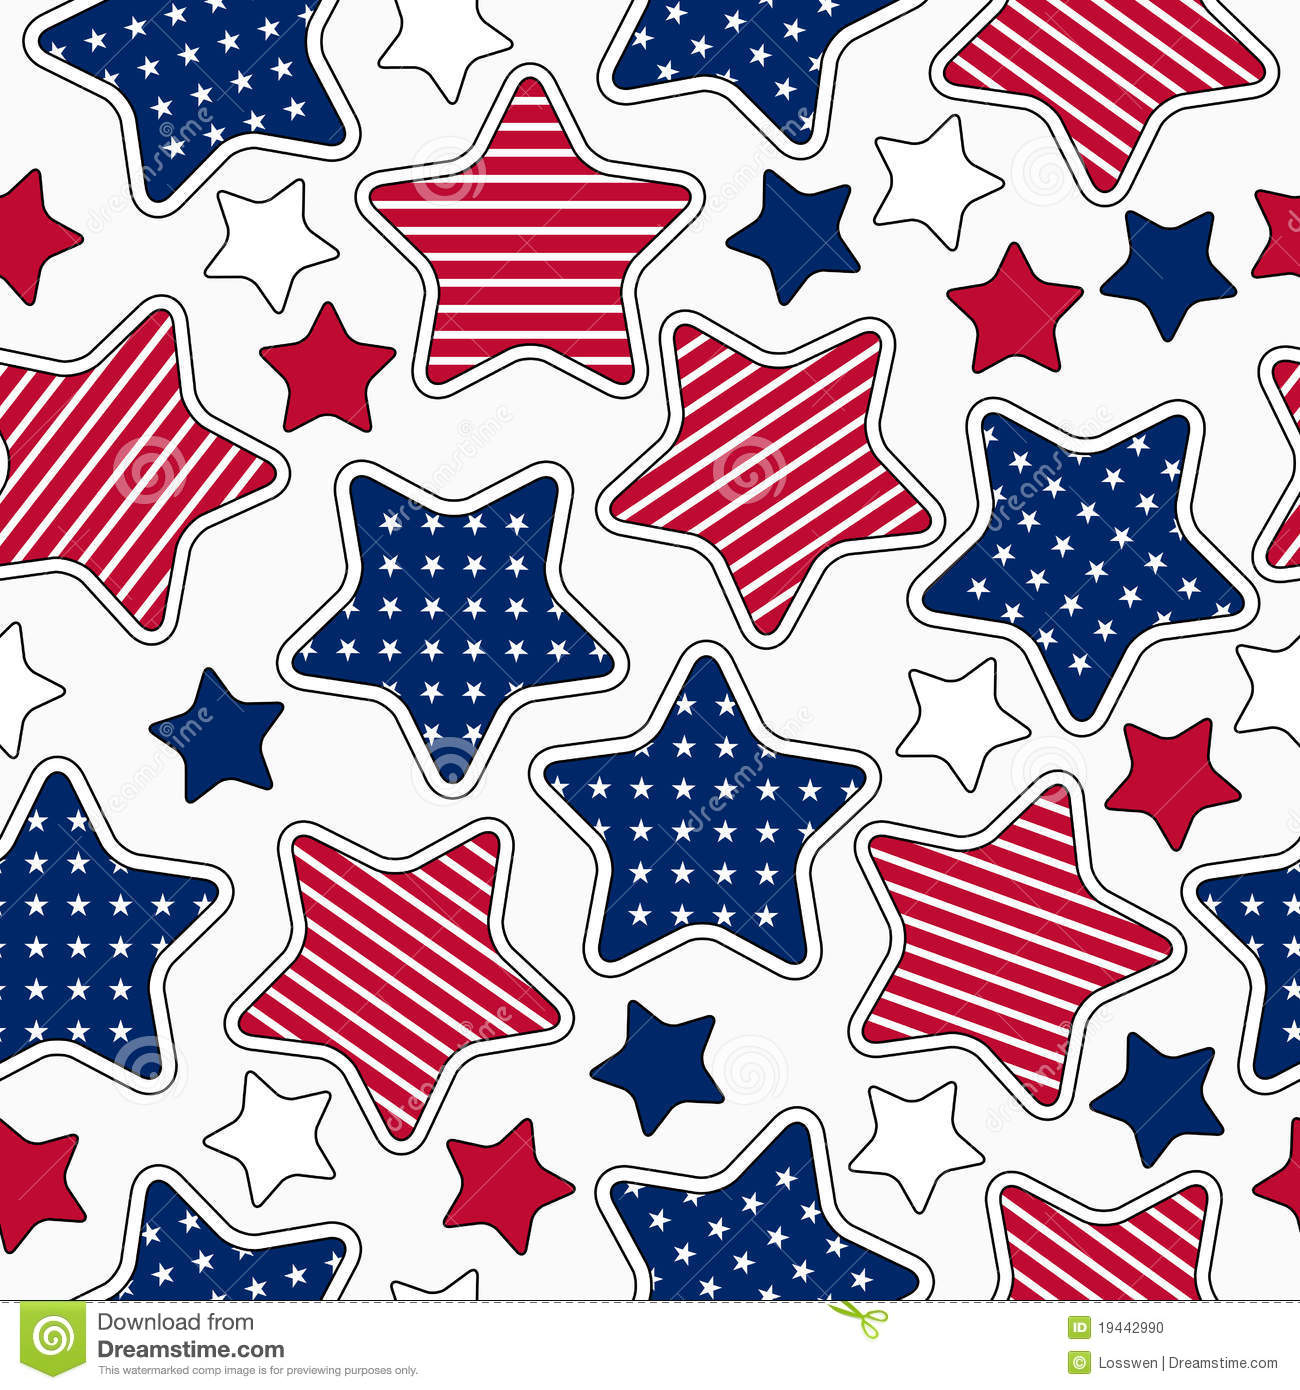 Stars And Stripes Pattern Stock Photo - Image: 19442990